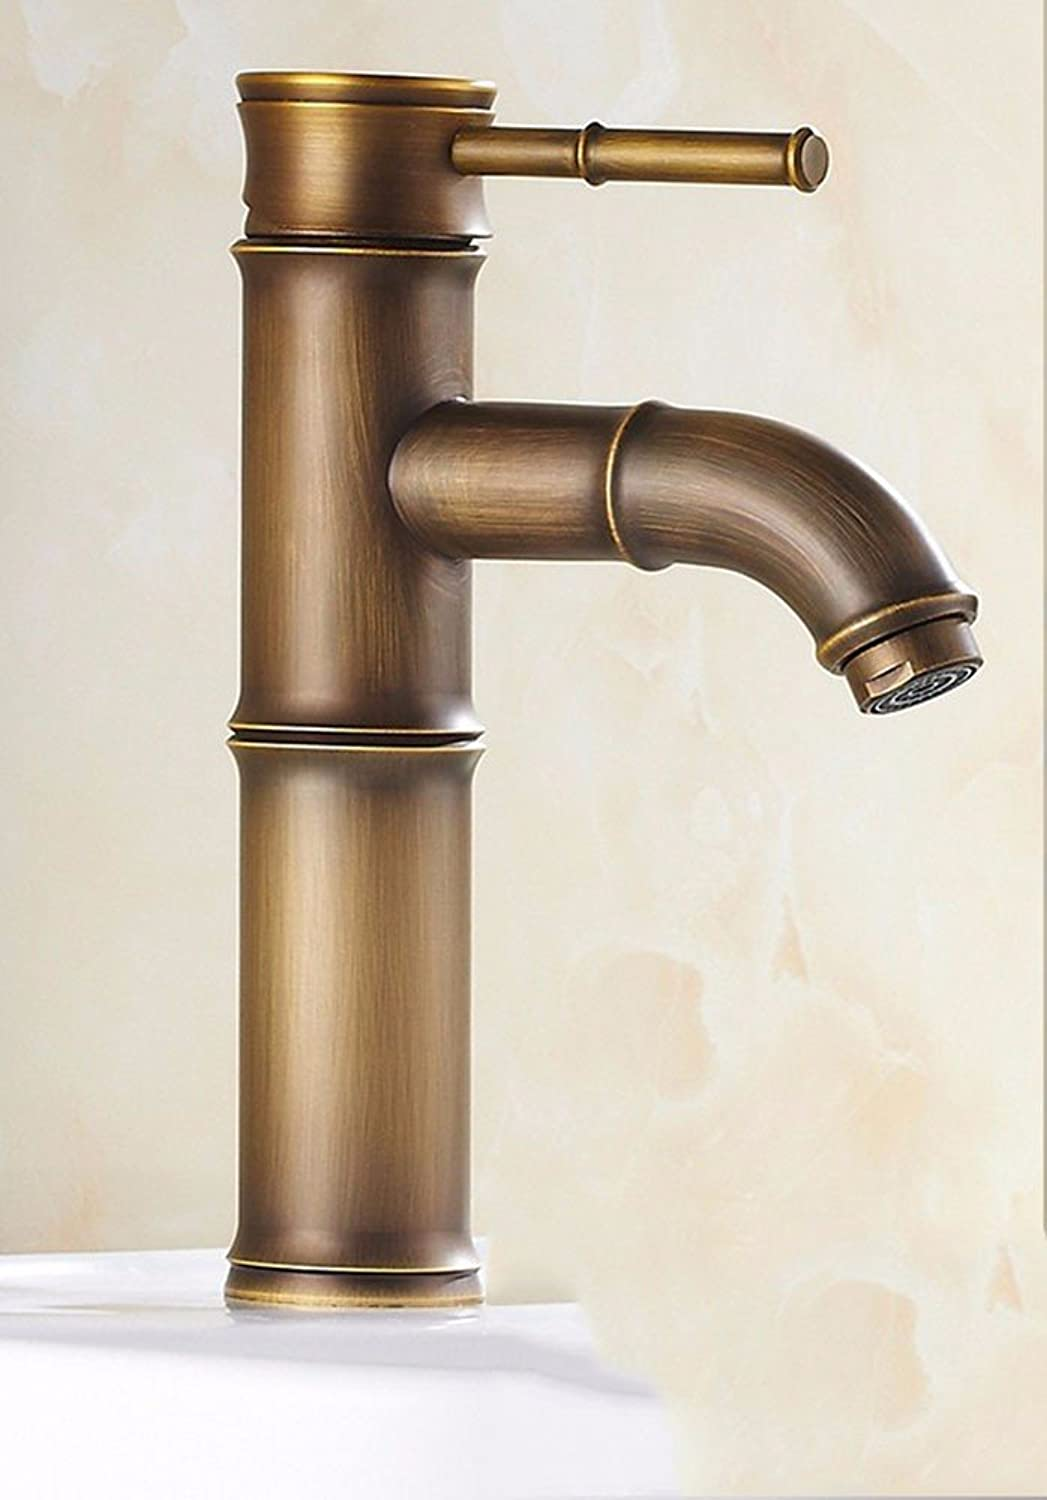 Hlluya Professional Sink Mixer Tap Kitchen Faucet The bathrooms, hot and cold, a vanity area with sink and faucet